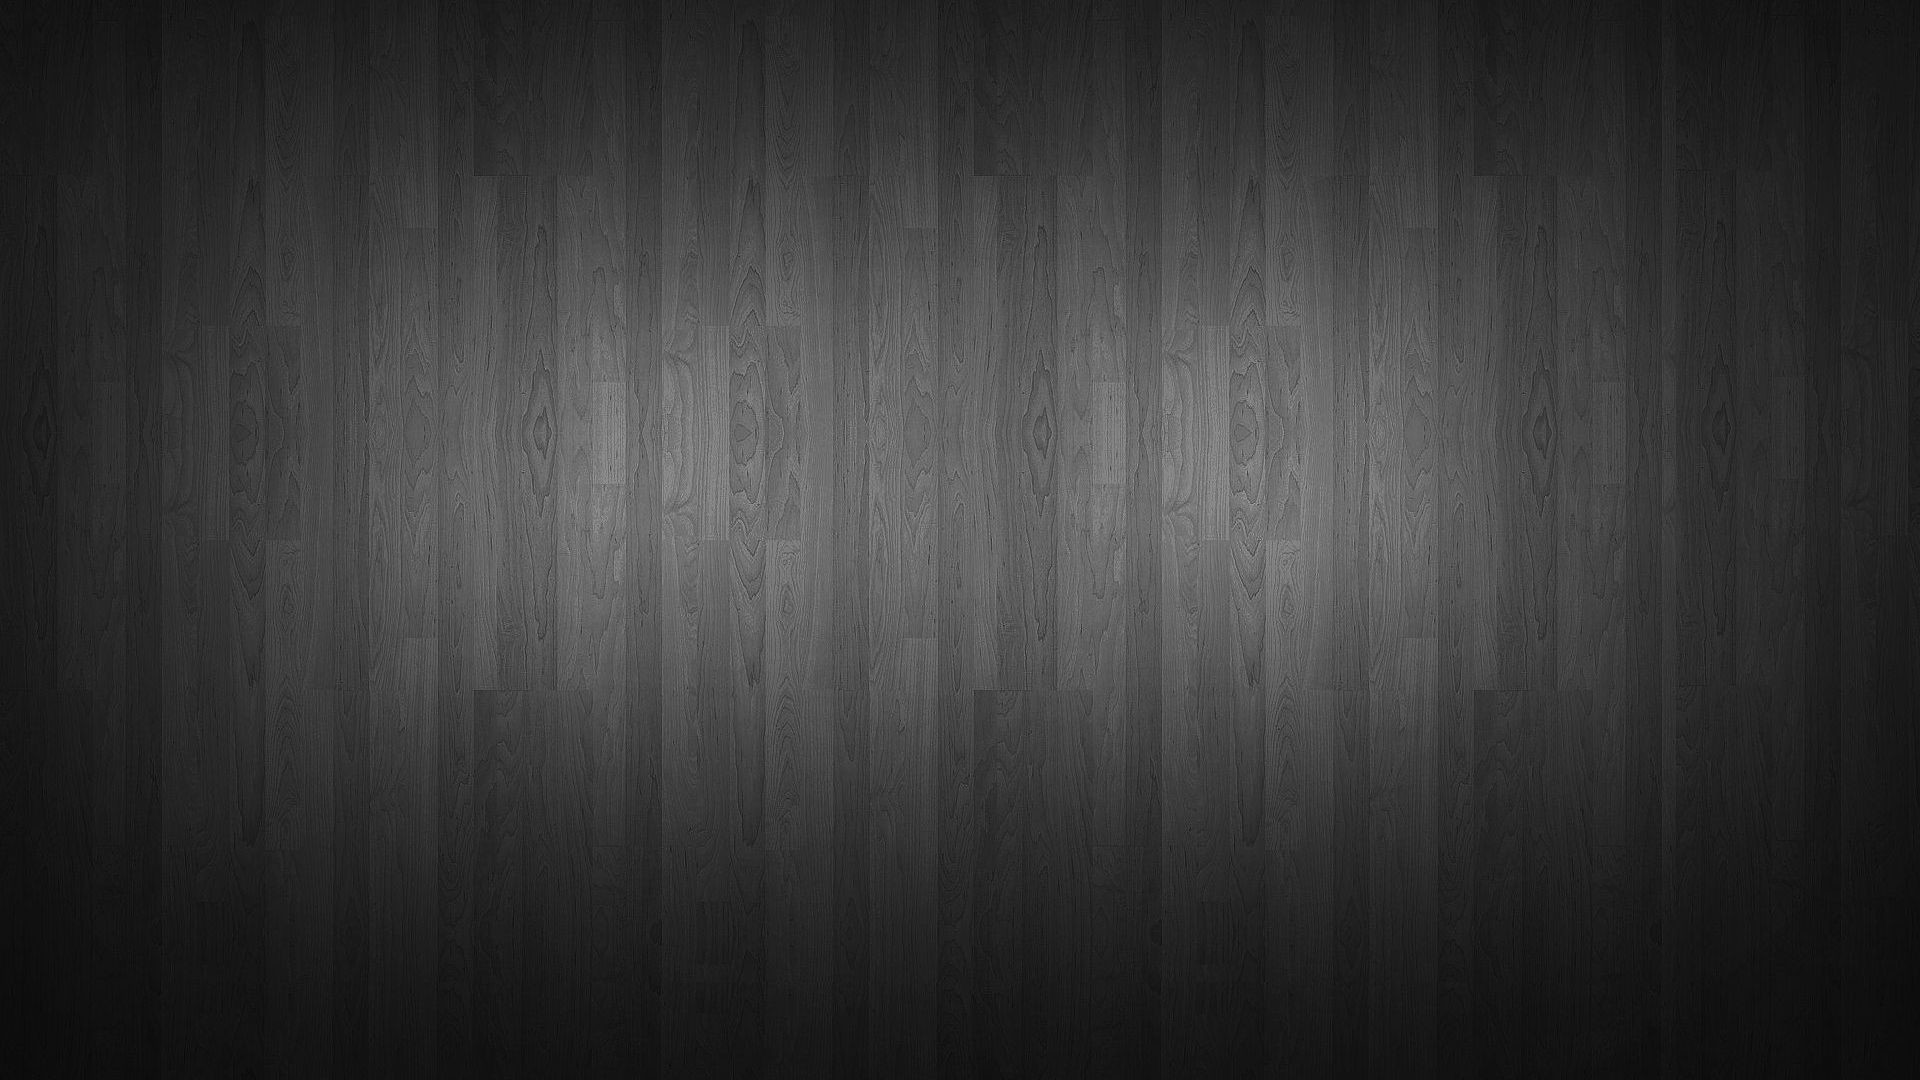 1920x1080 dark wood wallpaper Collection 74 Source · Wood Wallpaper Black And Designs  On Pinterest Images About Wall